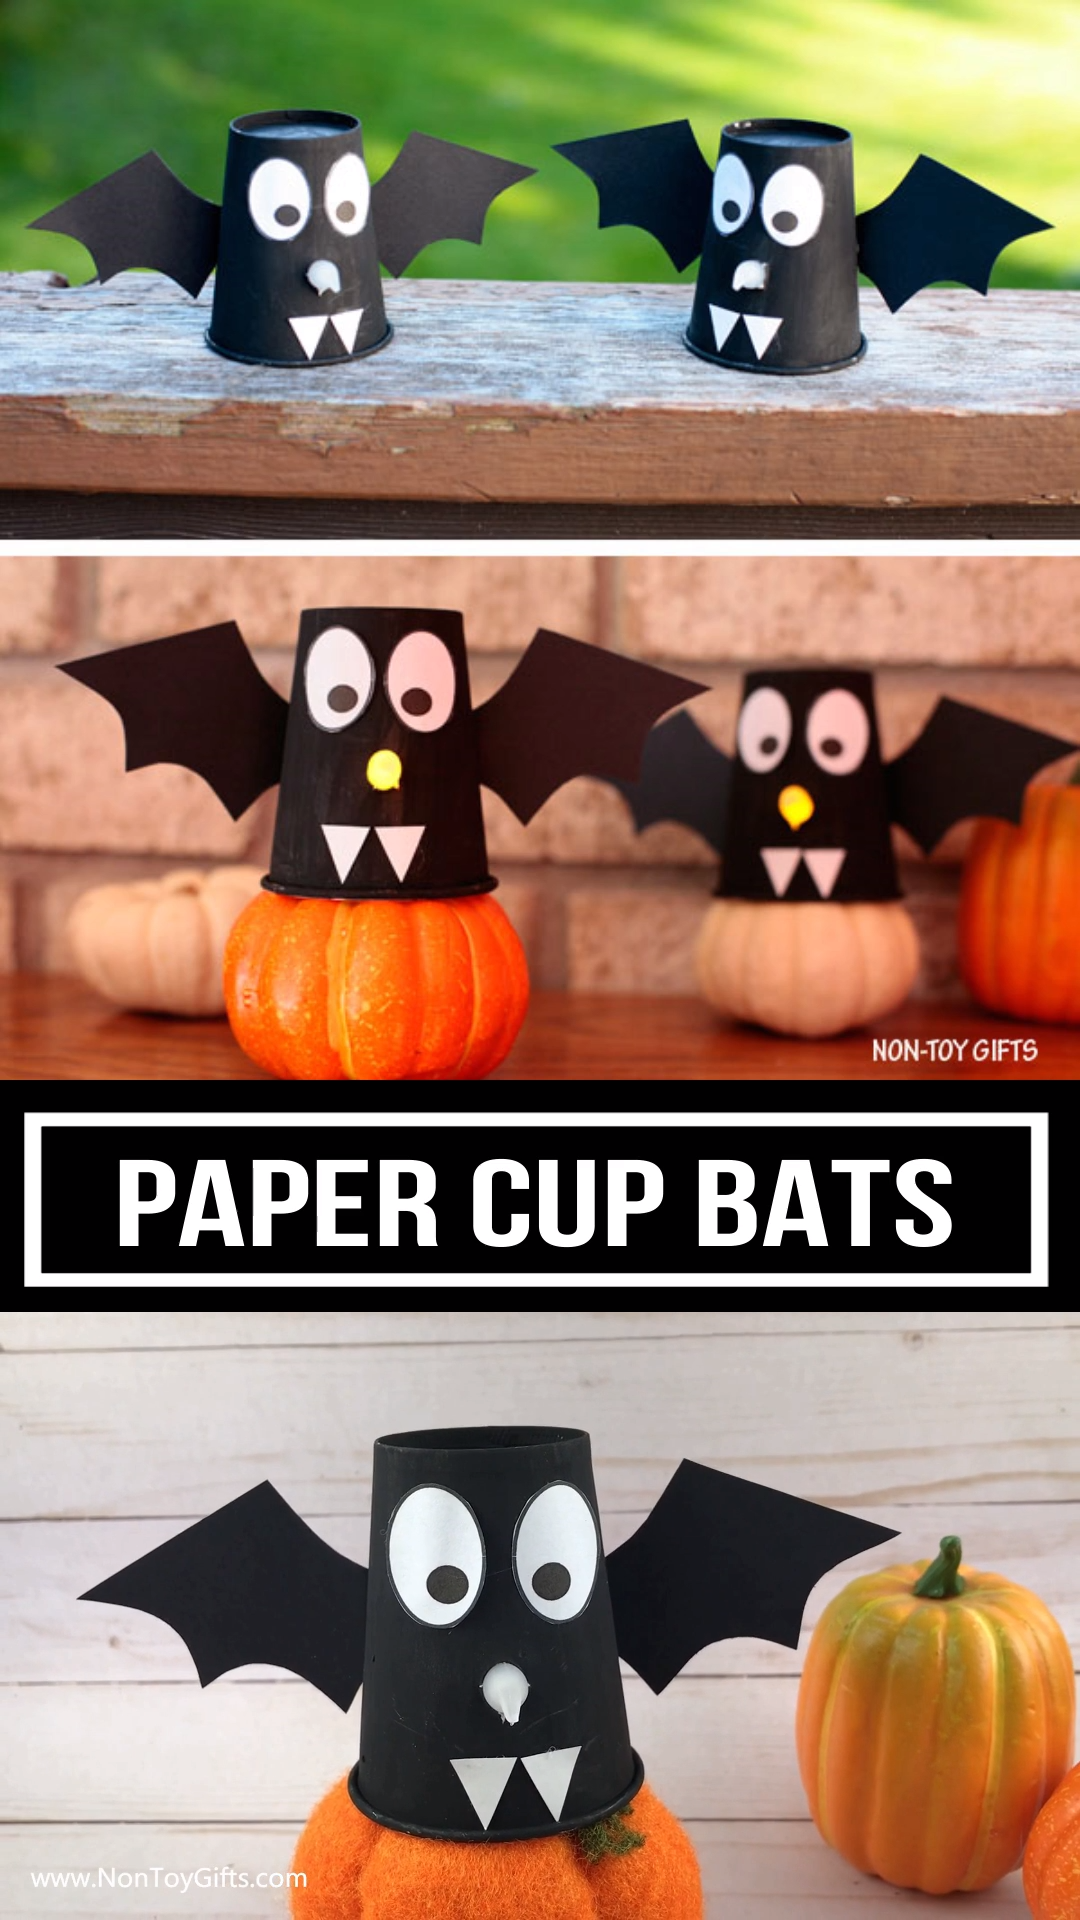 Paper cup bats #halloweencraftsfortoddlers